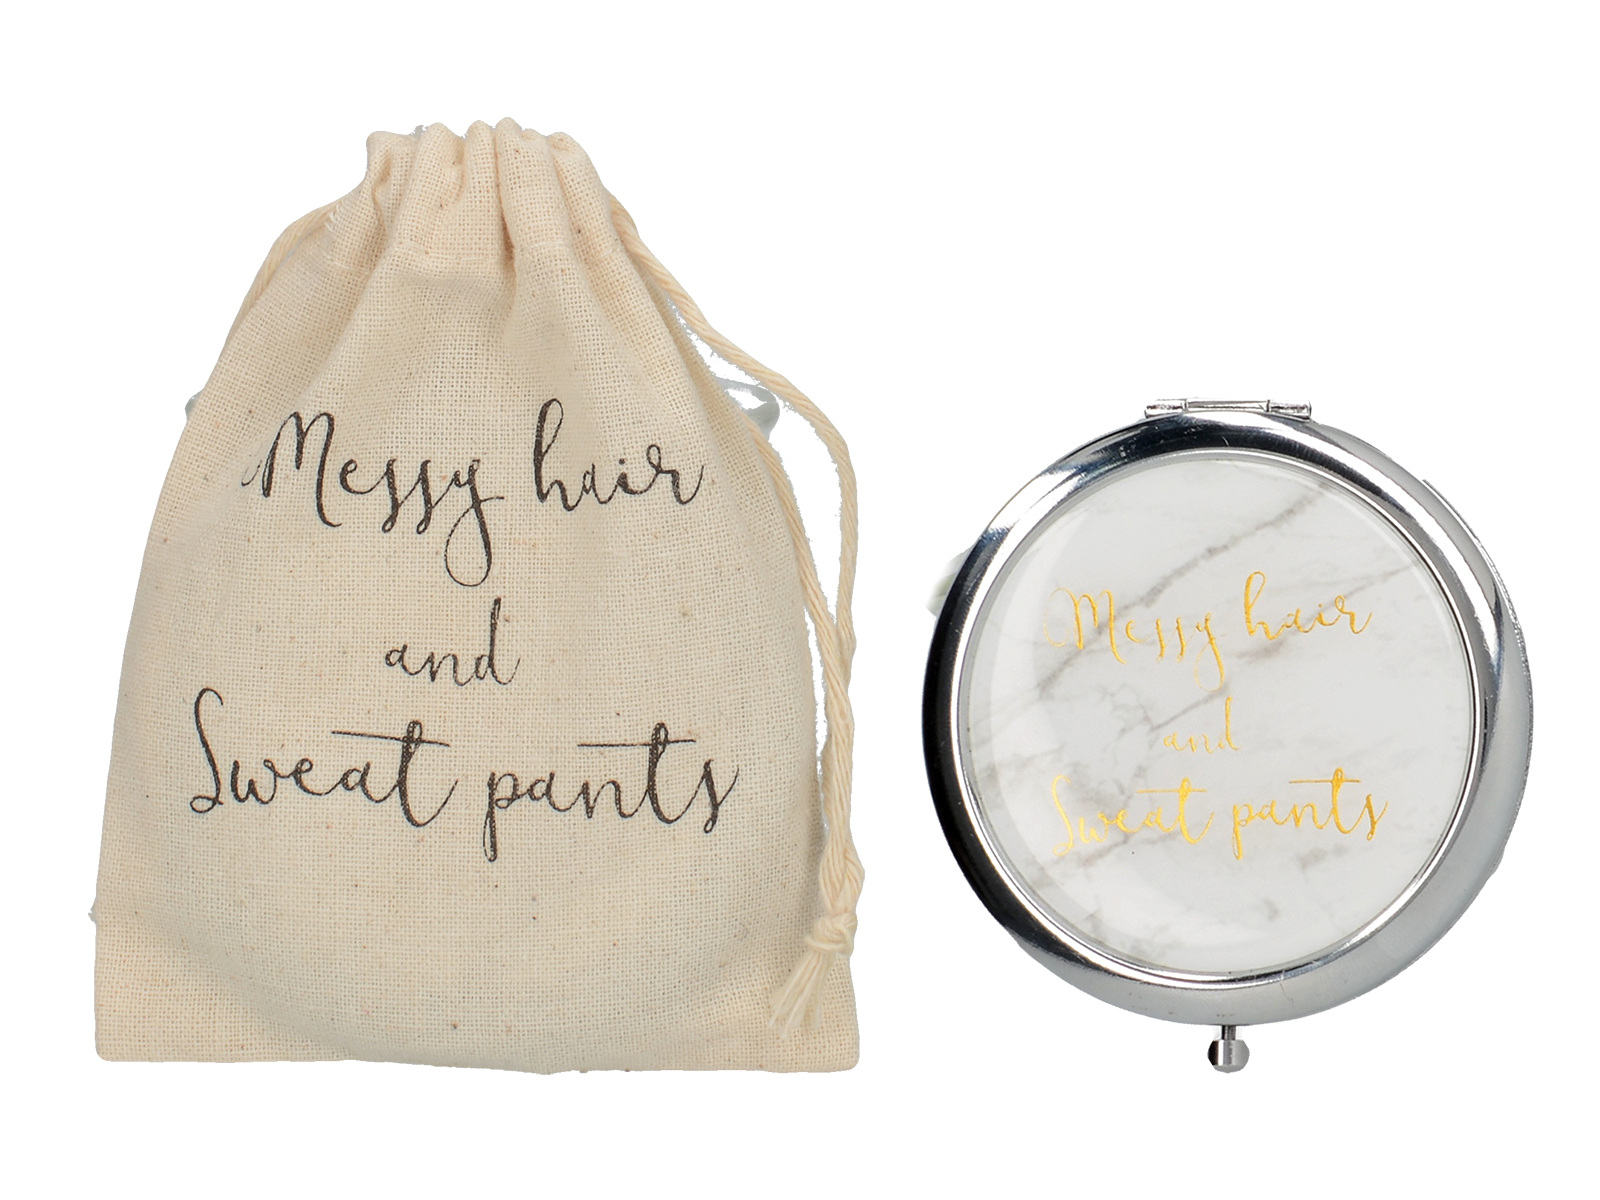 Creative Tops Ava & I 15 Compact Mirrors And Drawstring Bags - Messy Hair And Sweatpants In Cdu